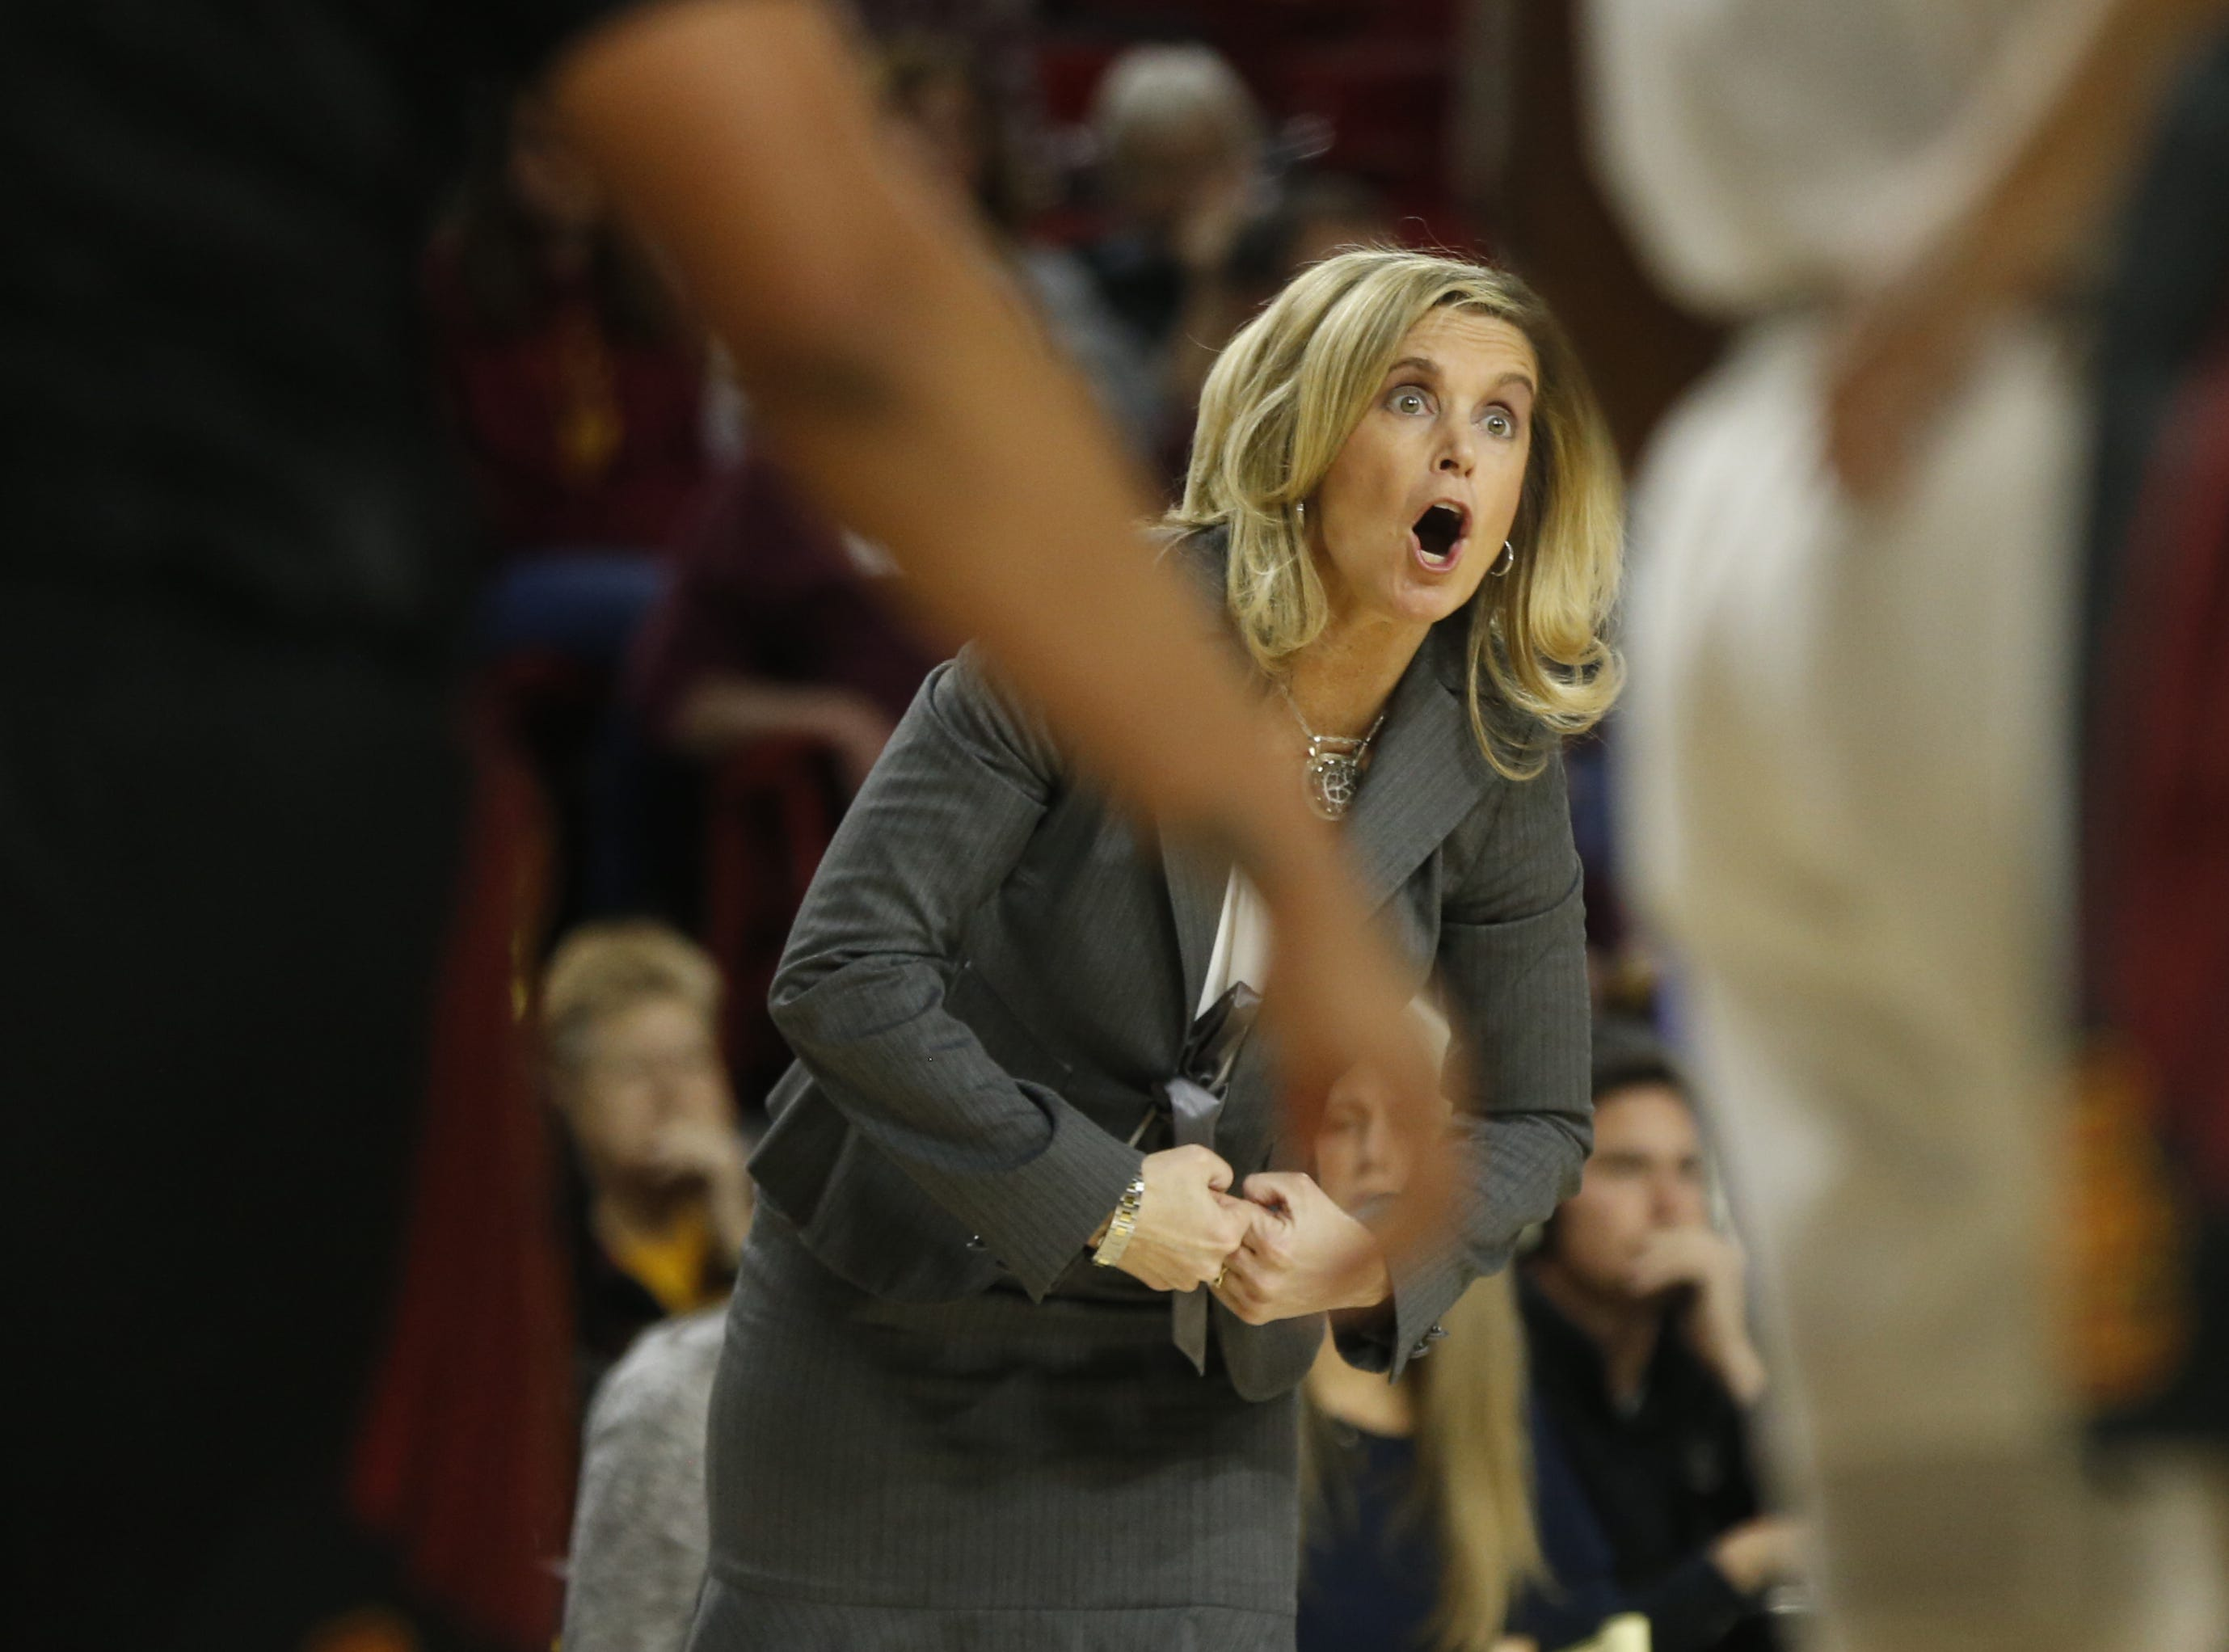 ASU's head coach Charli Turner Thorne yells to her team during the second half against USC at Wells Fargo Arena in Tempe, Ariz. on January 27, 2019.